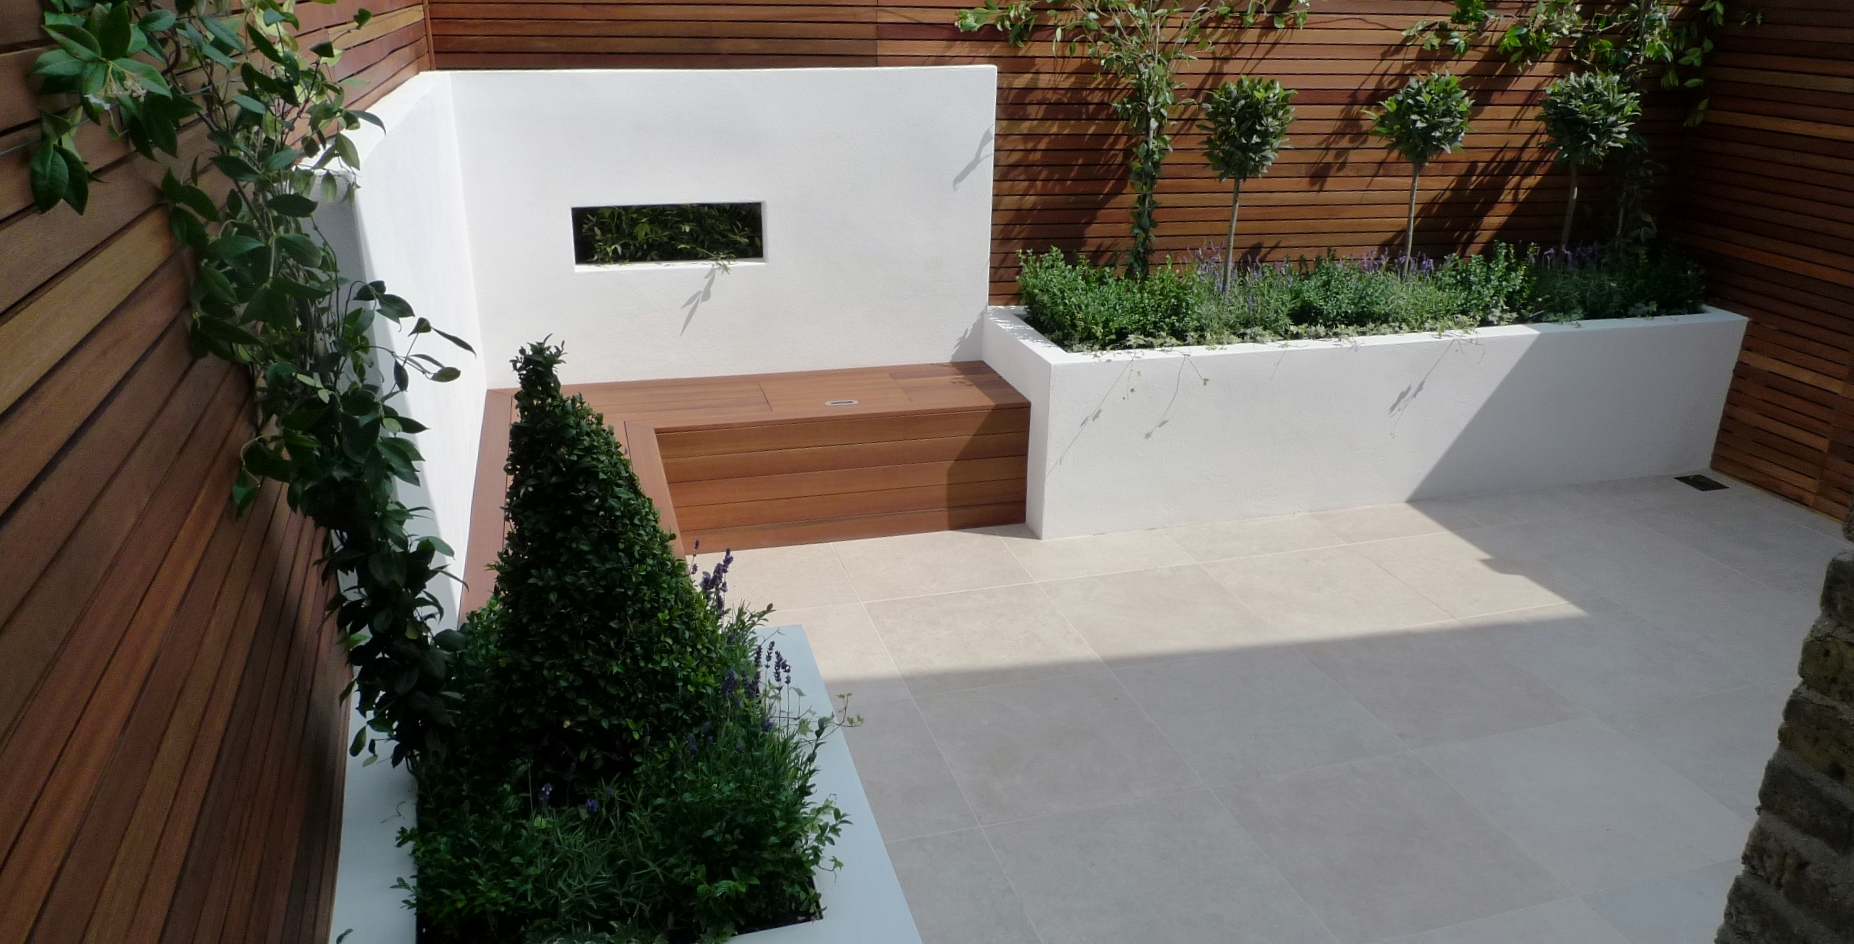 pimlico paving small garden travertine london